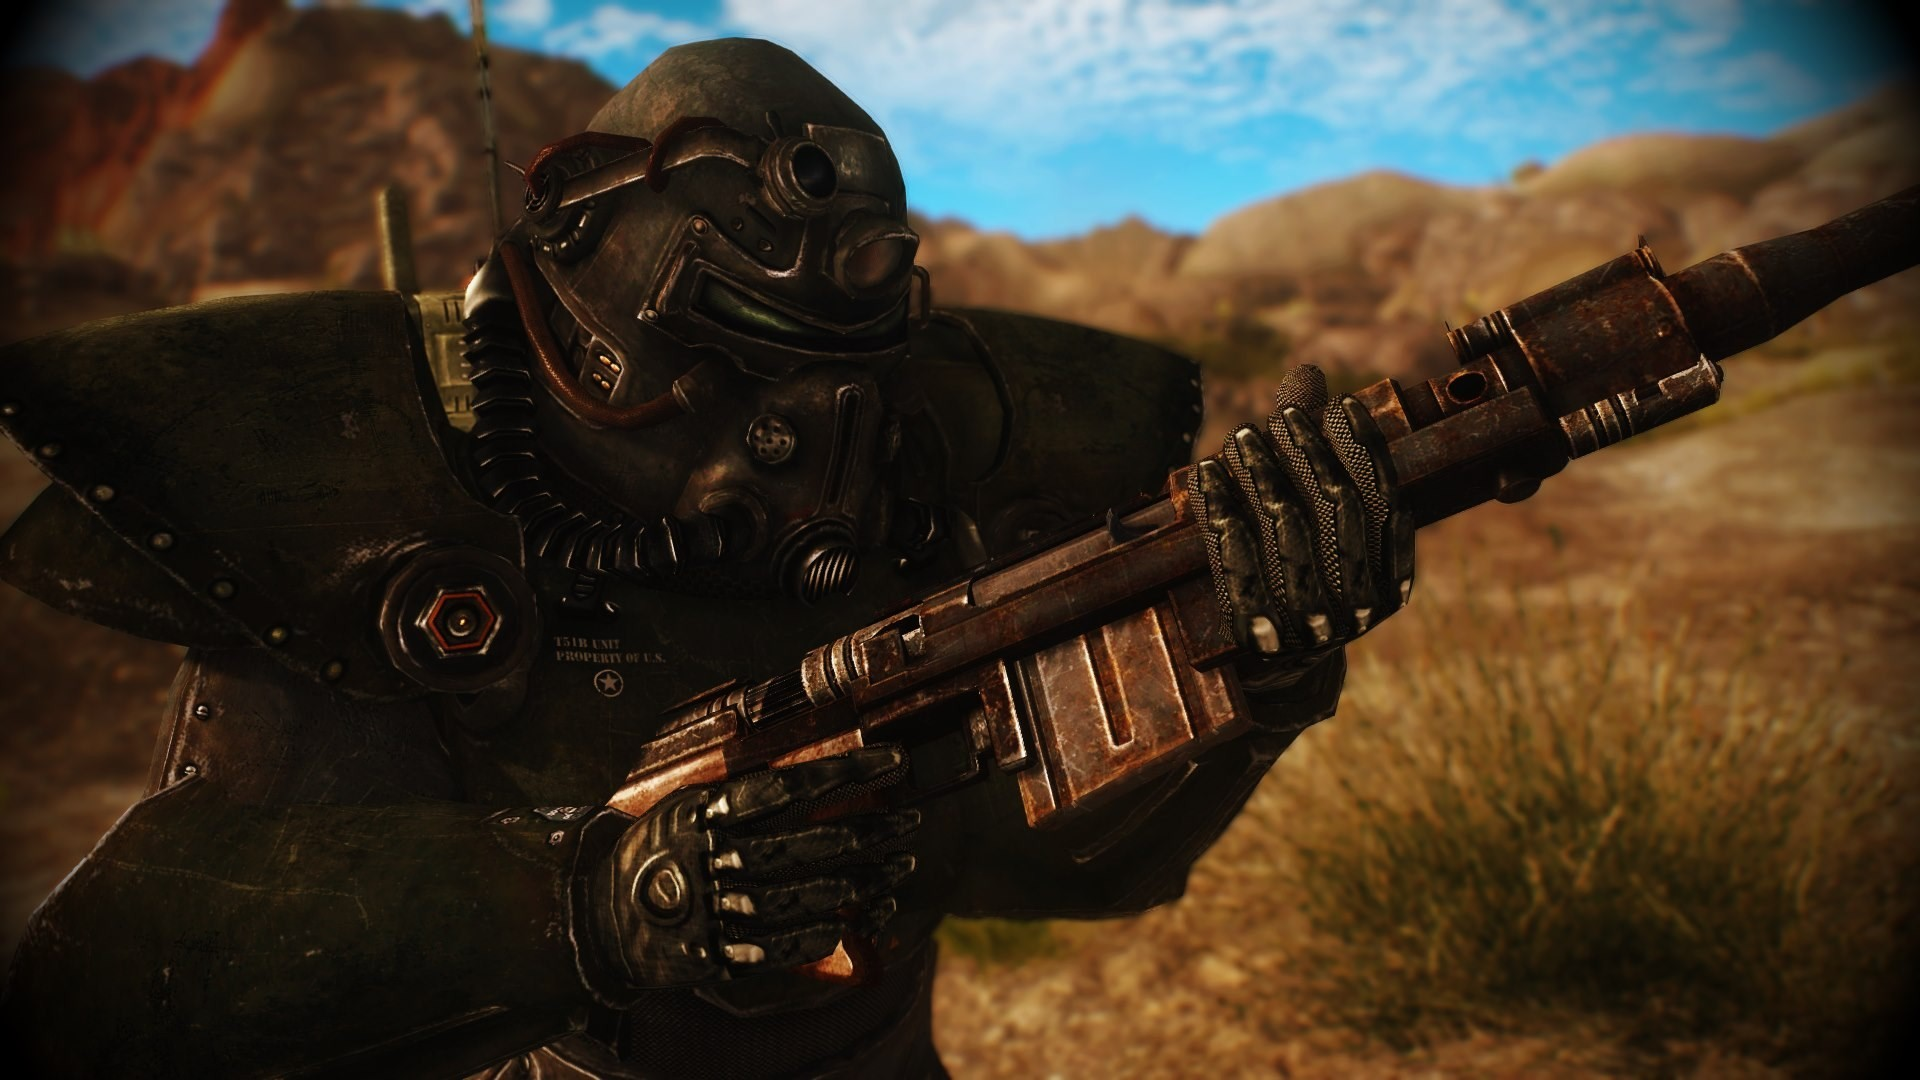 fallout new vegas wallpaper pack hd by Gregson Birds